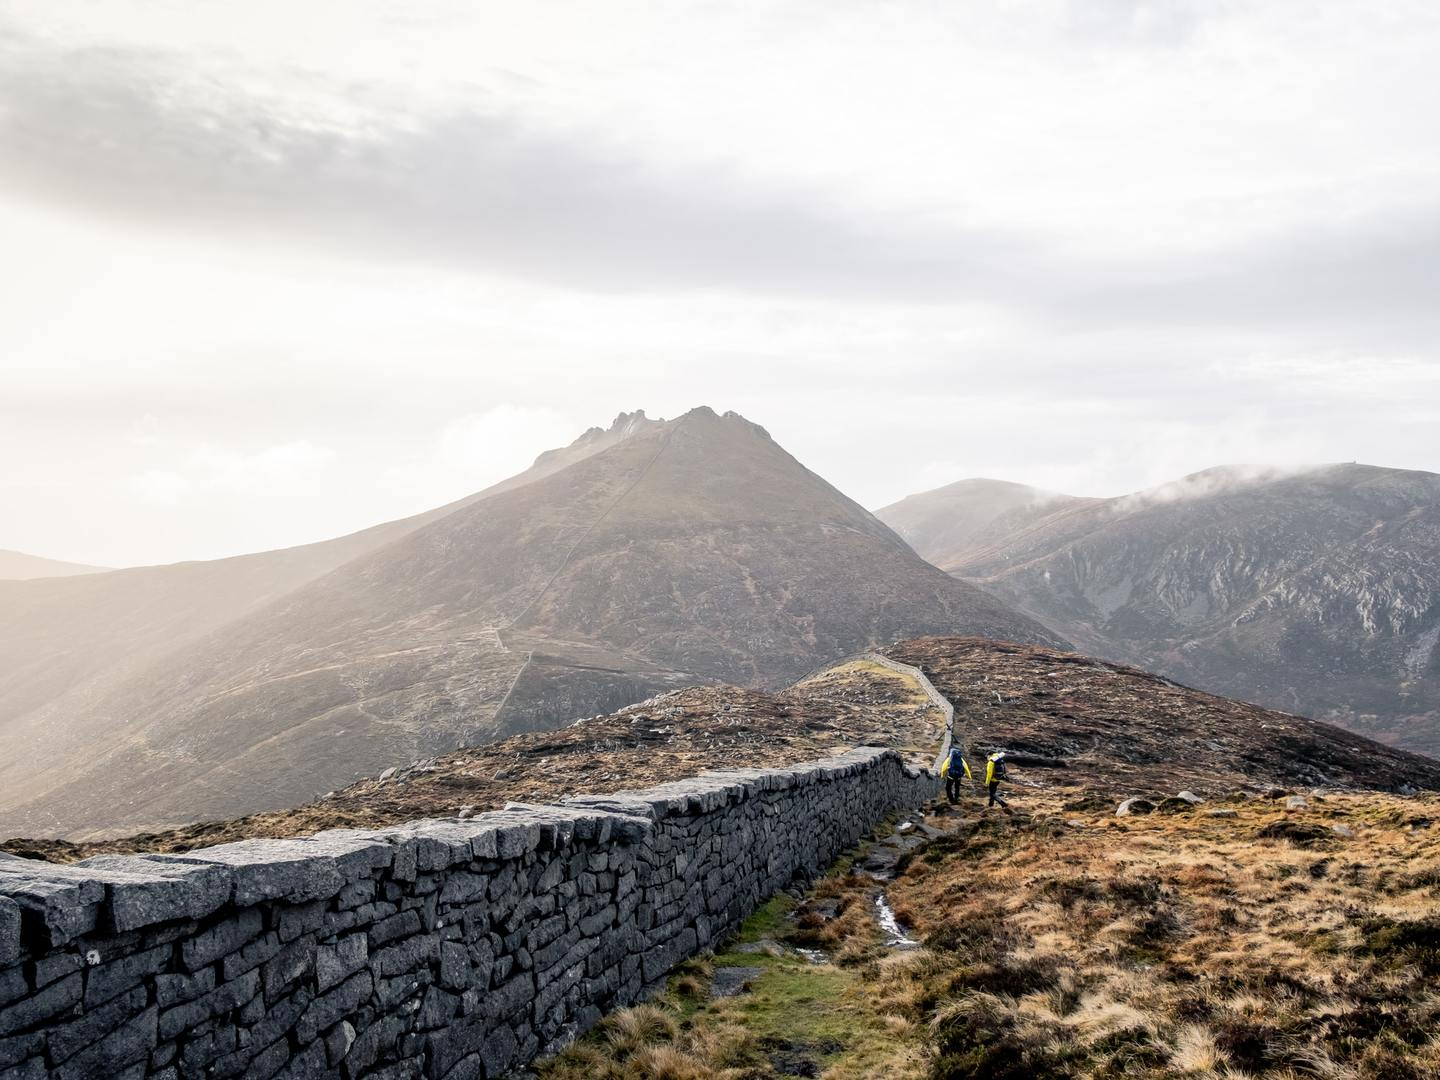 The Mourne Mountains near Newry in Northern Ireland